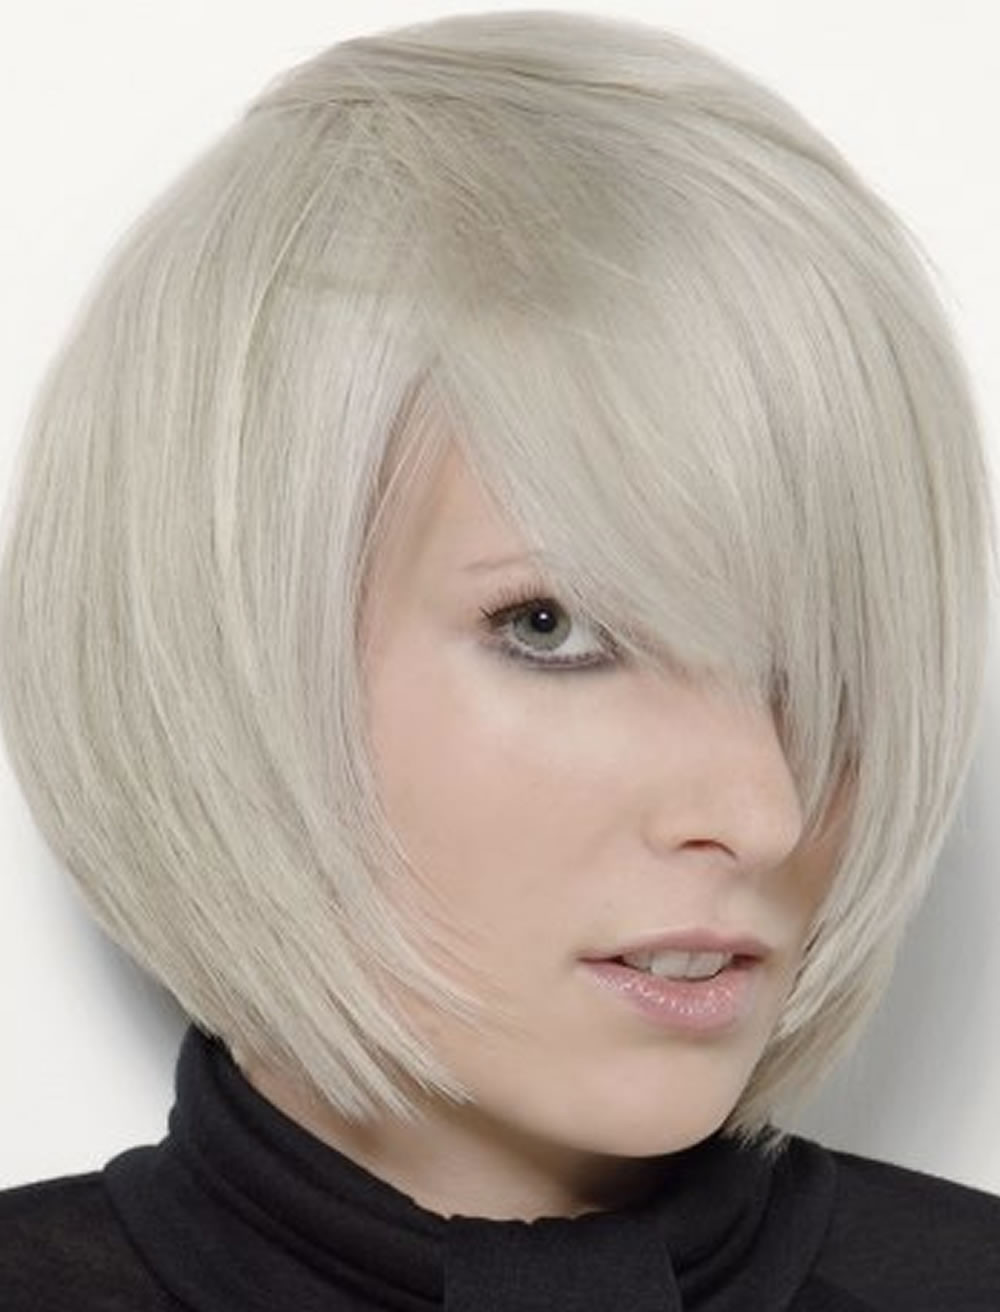 Best ideas about Photos Of Bob Haircuts . Save or Pin 2018 Bob Hairstyles and Haircuts – 25 Hottest Bob Cut Now.